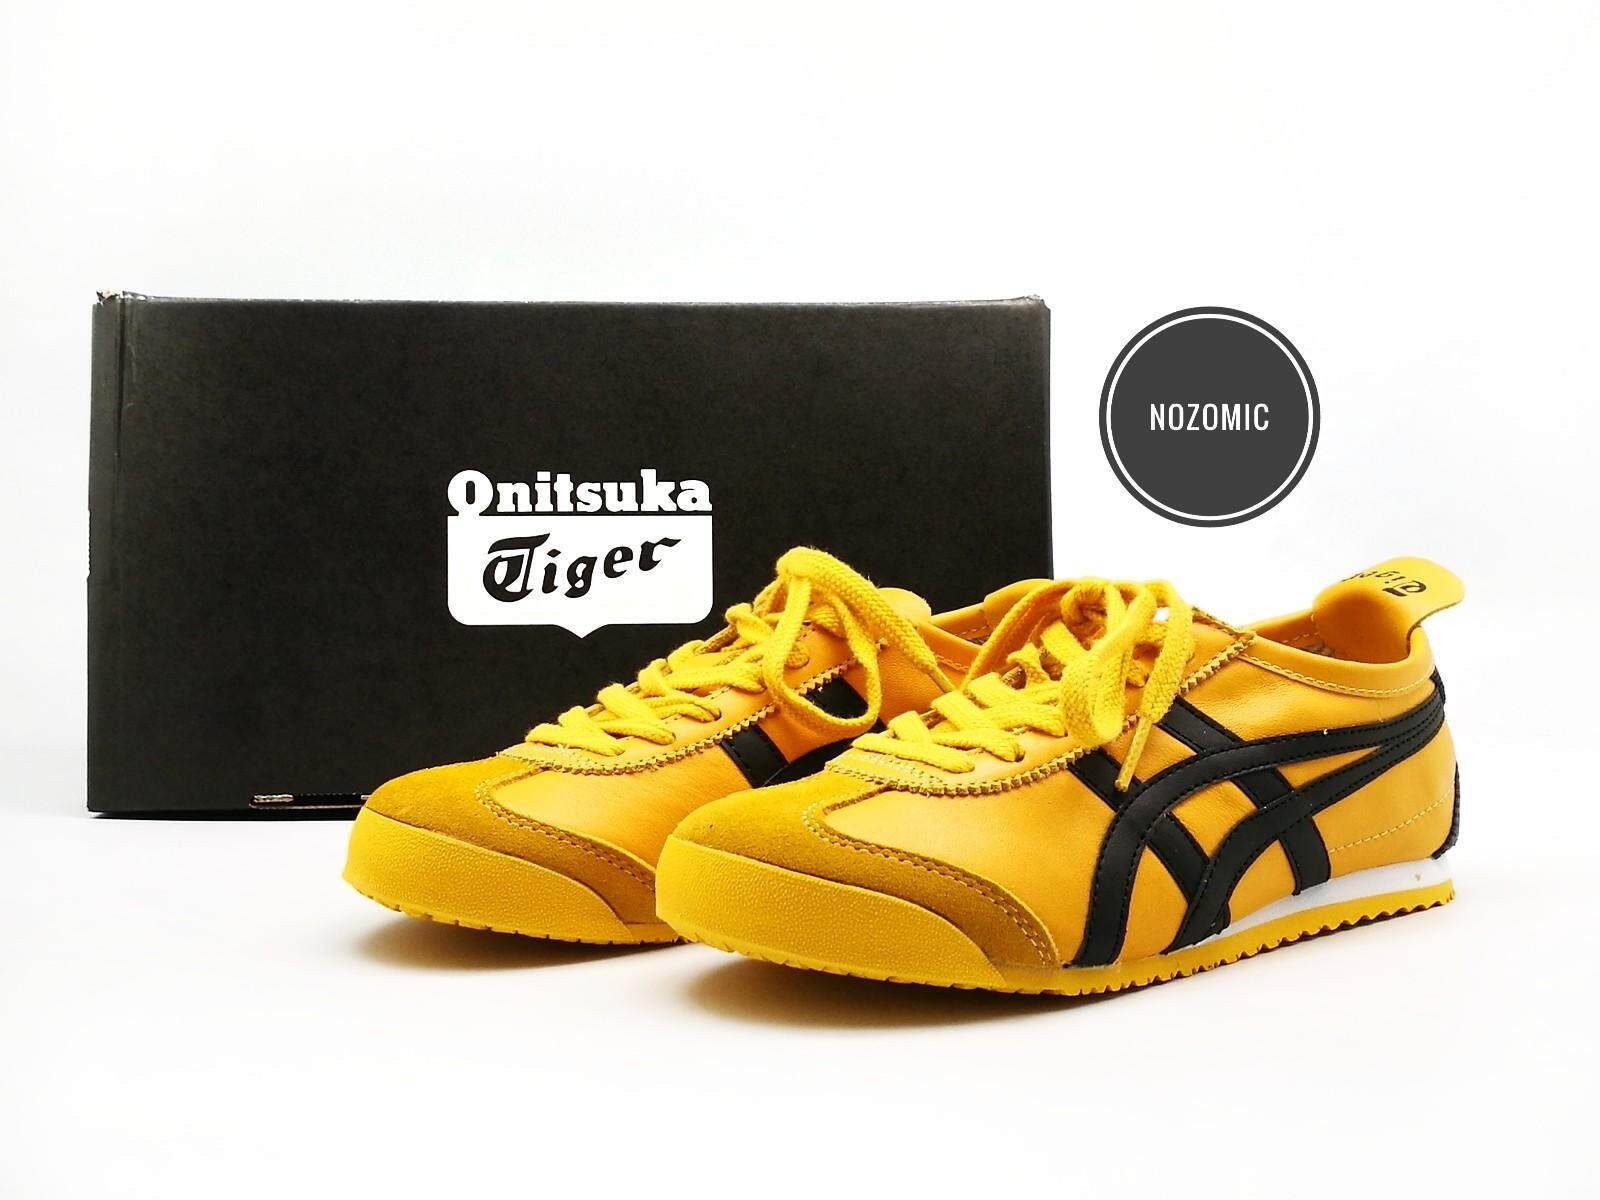 detailed look f7de1 1e855 Asics Onitsuka Tiger Mexico 66 Yellow Base With Dark Blue Stripes Shoes  Lace Leather Sneakers